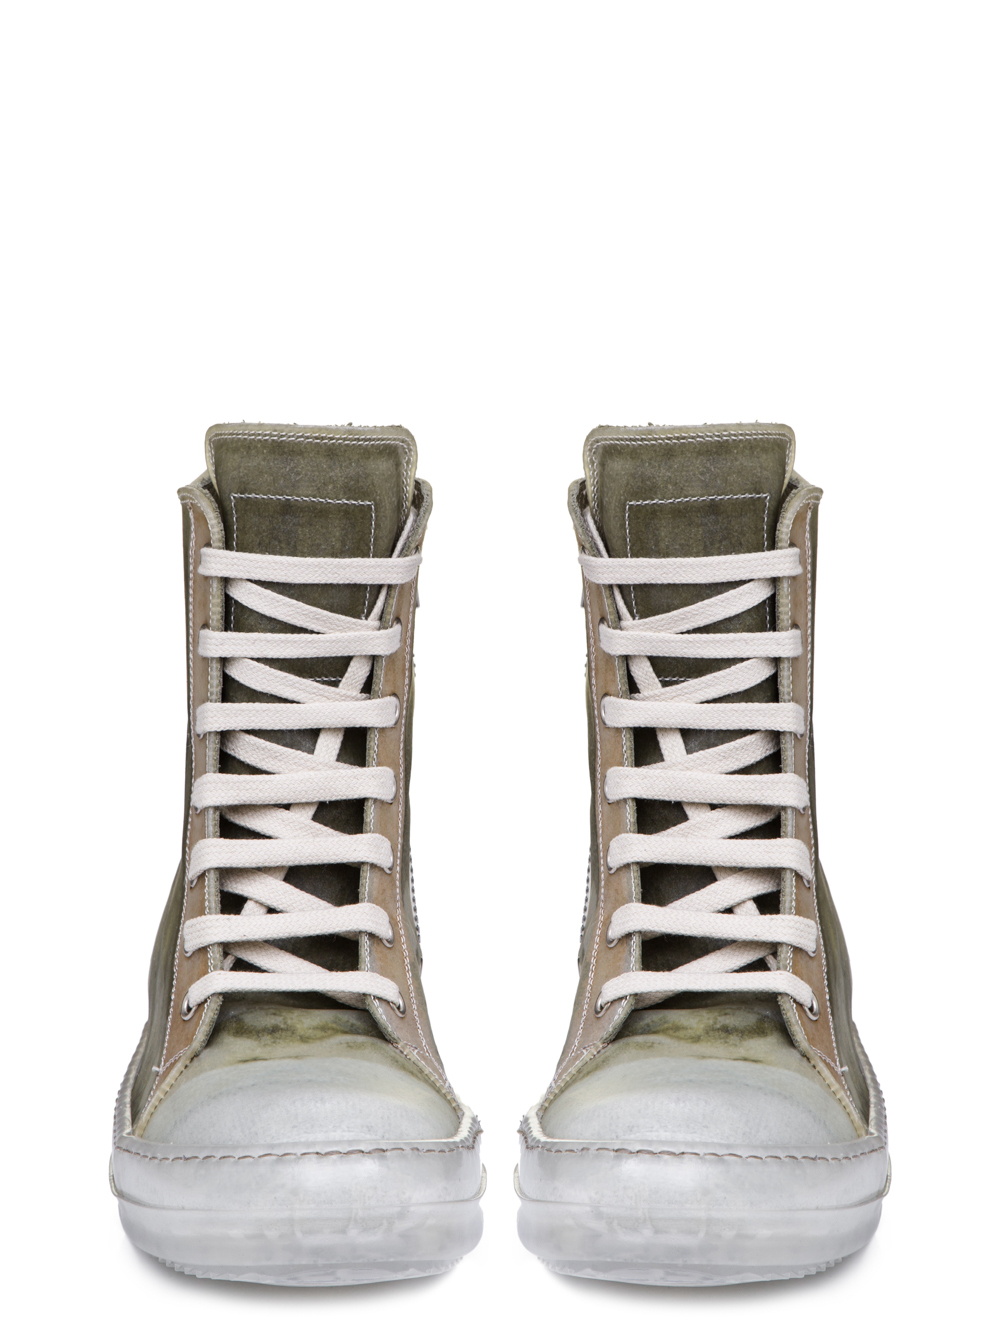 RICK OWENS SS19 BABEL NO CAP SNEAKERS IN NATURAL TRANPARENT CALF LEATHER